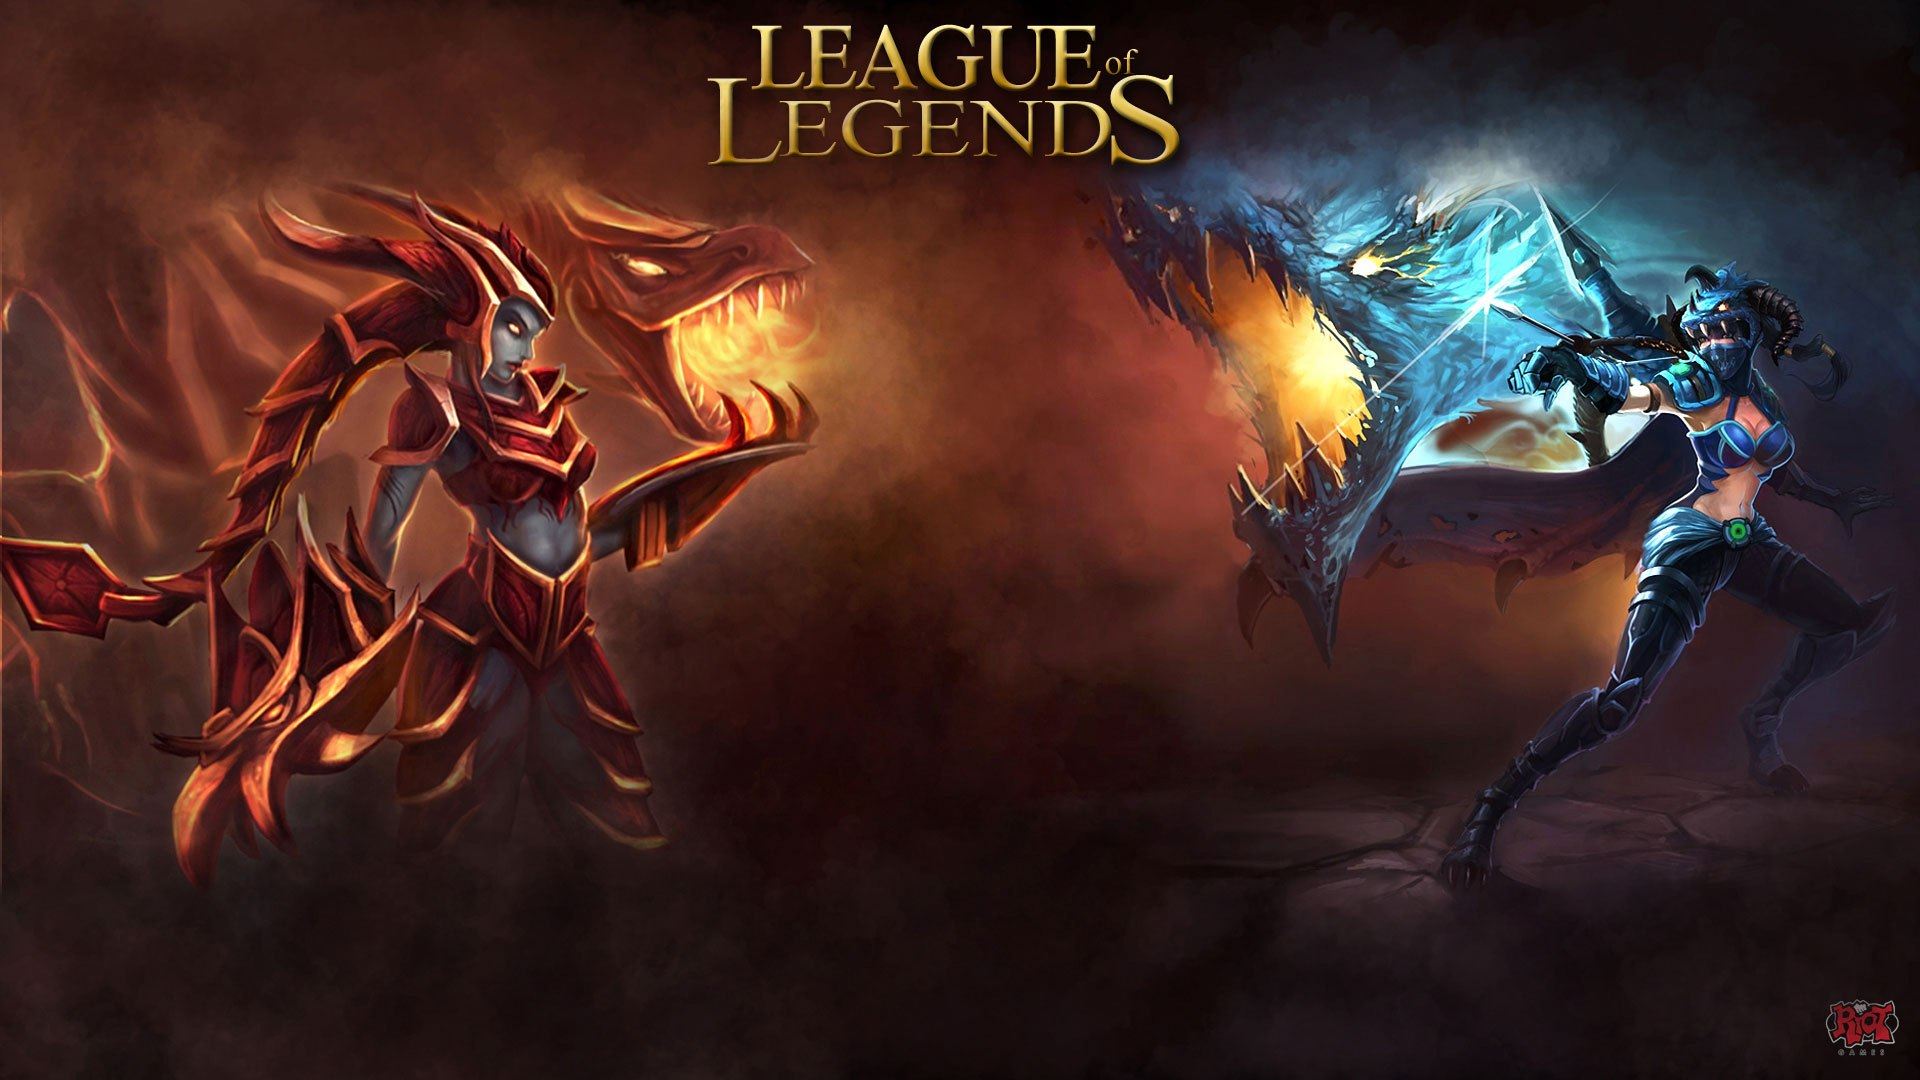 laeuge of legends